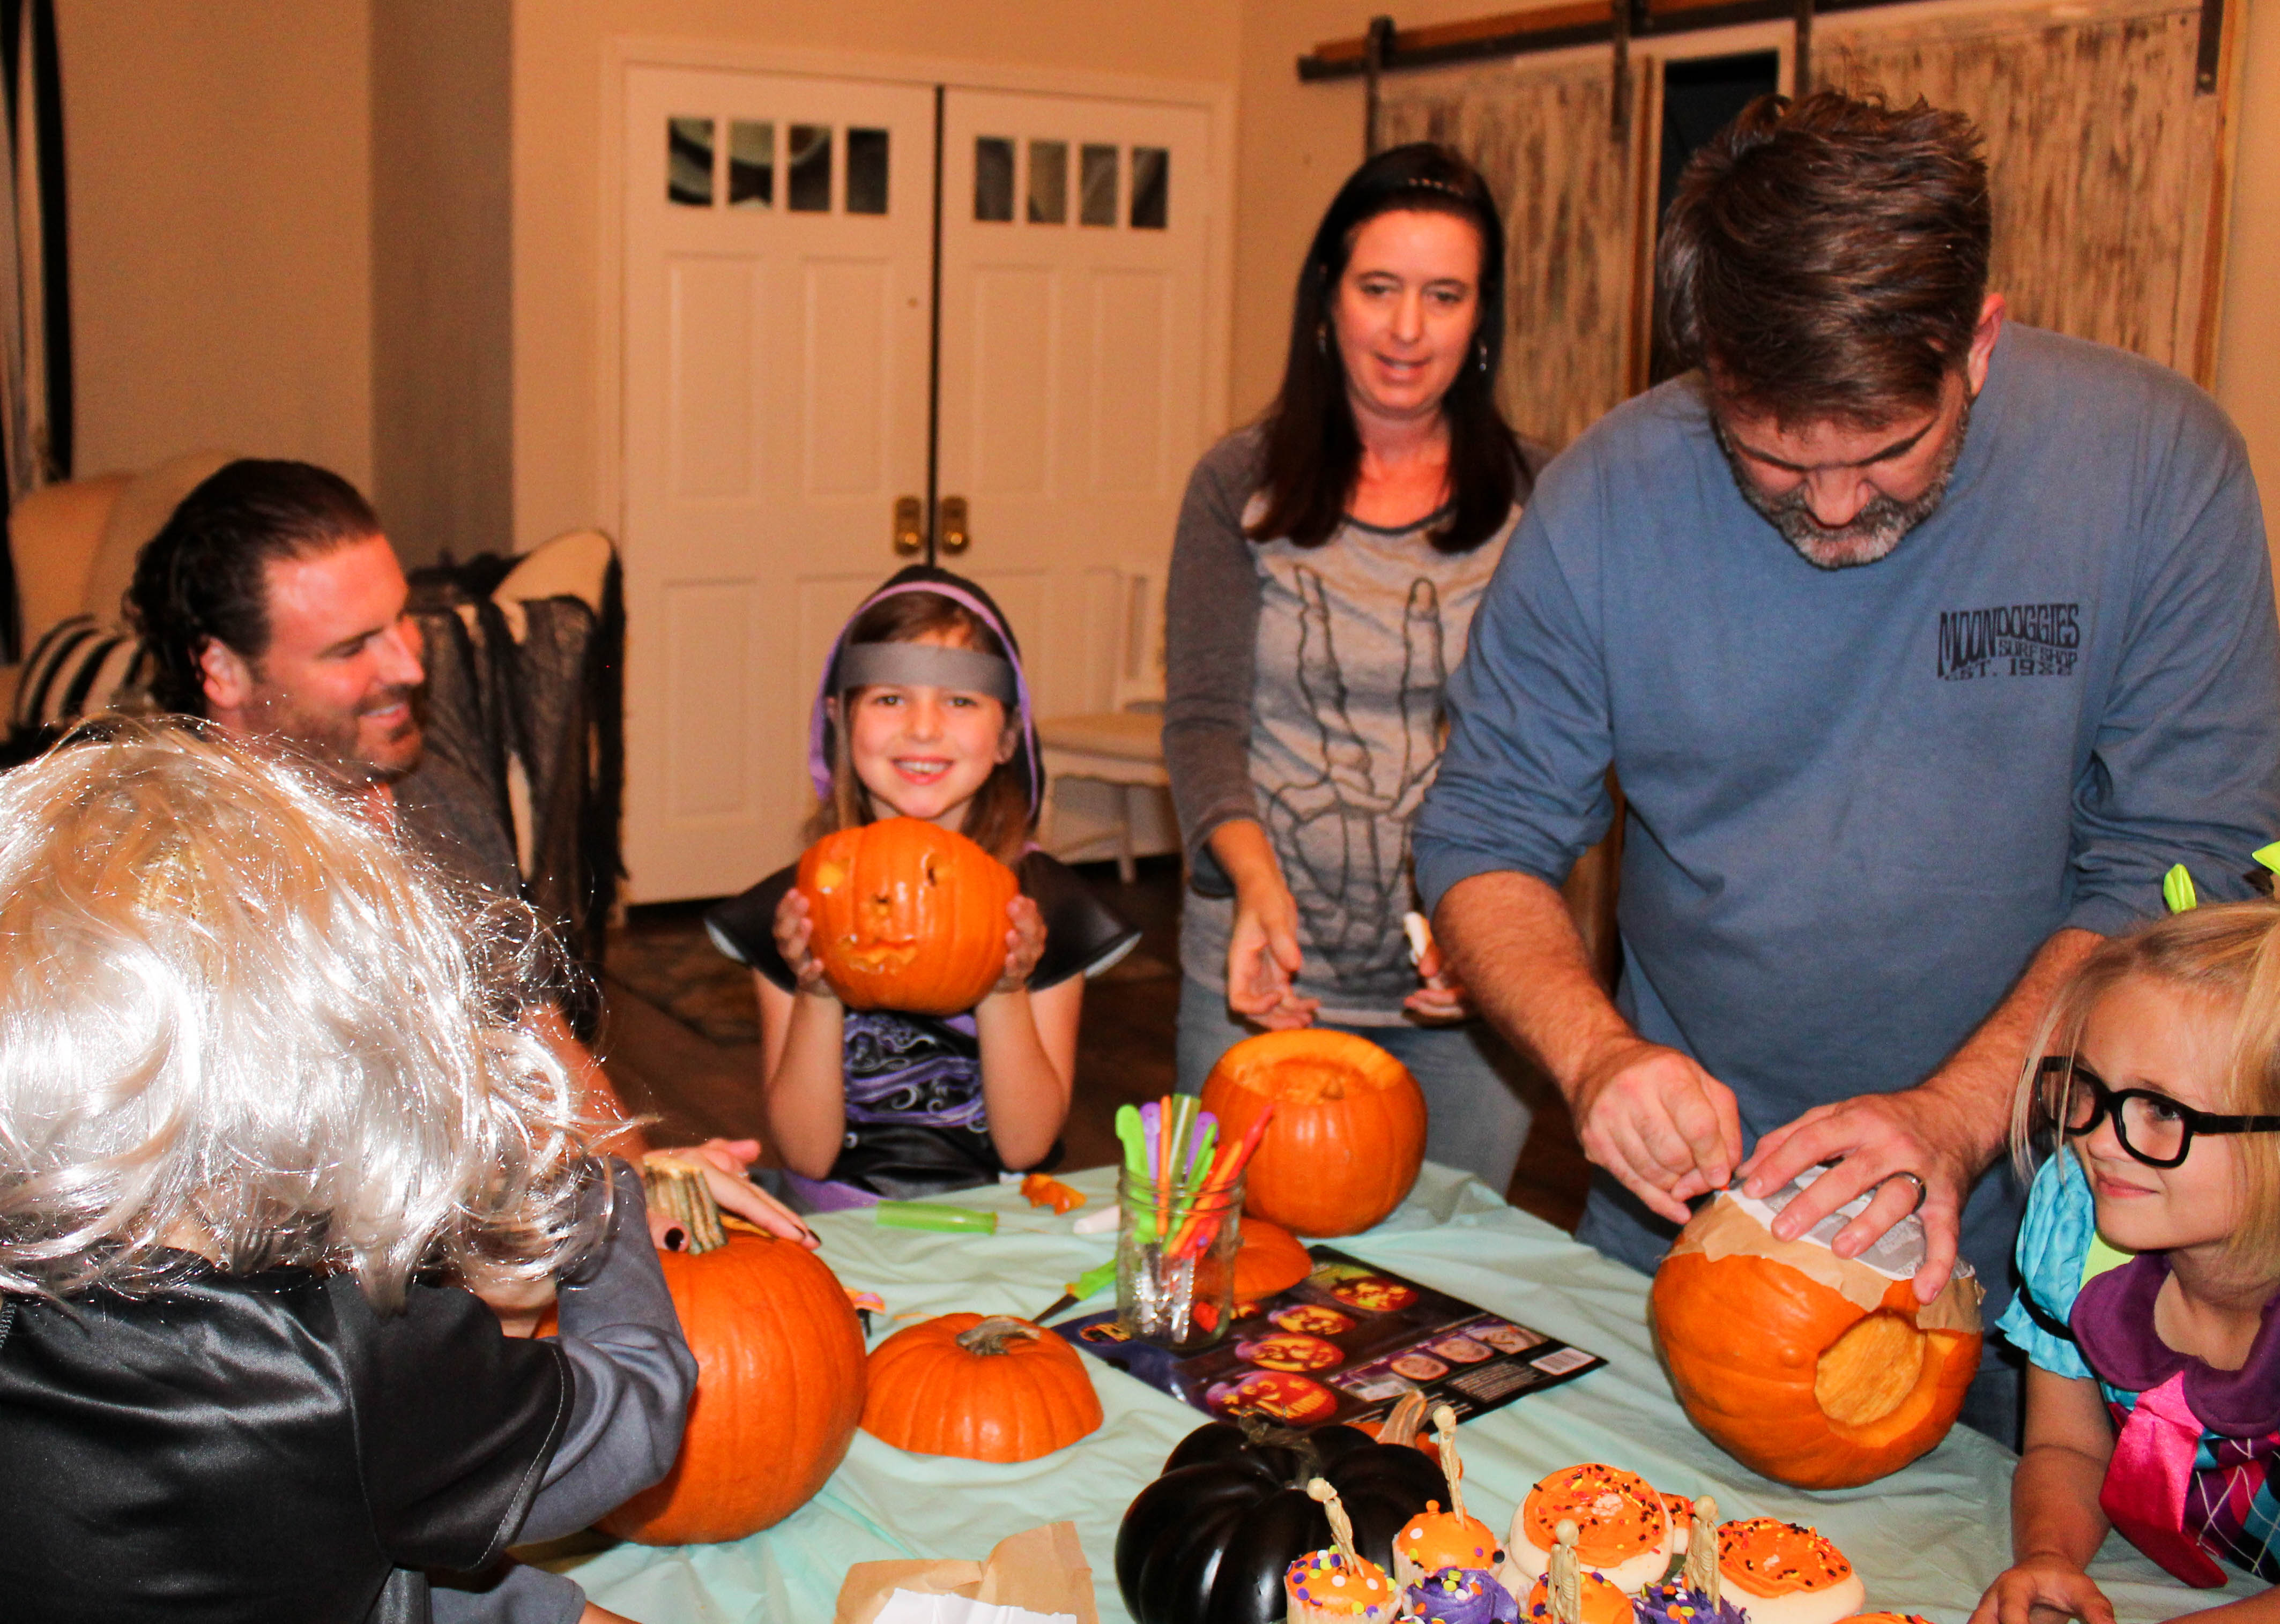 pumpkin-carving-party-costumes-kids-halloween-46-copy